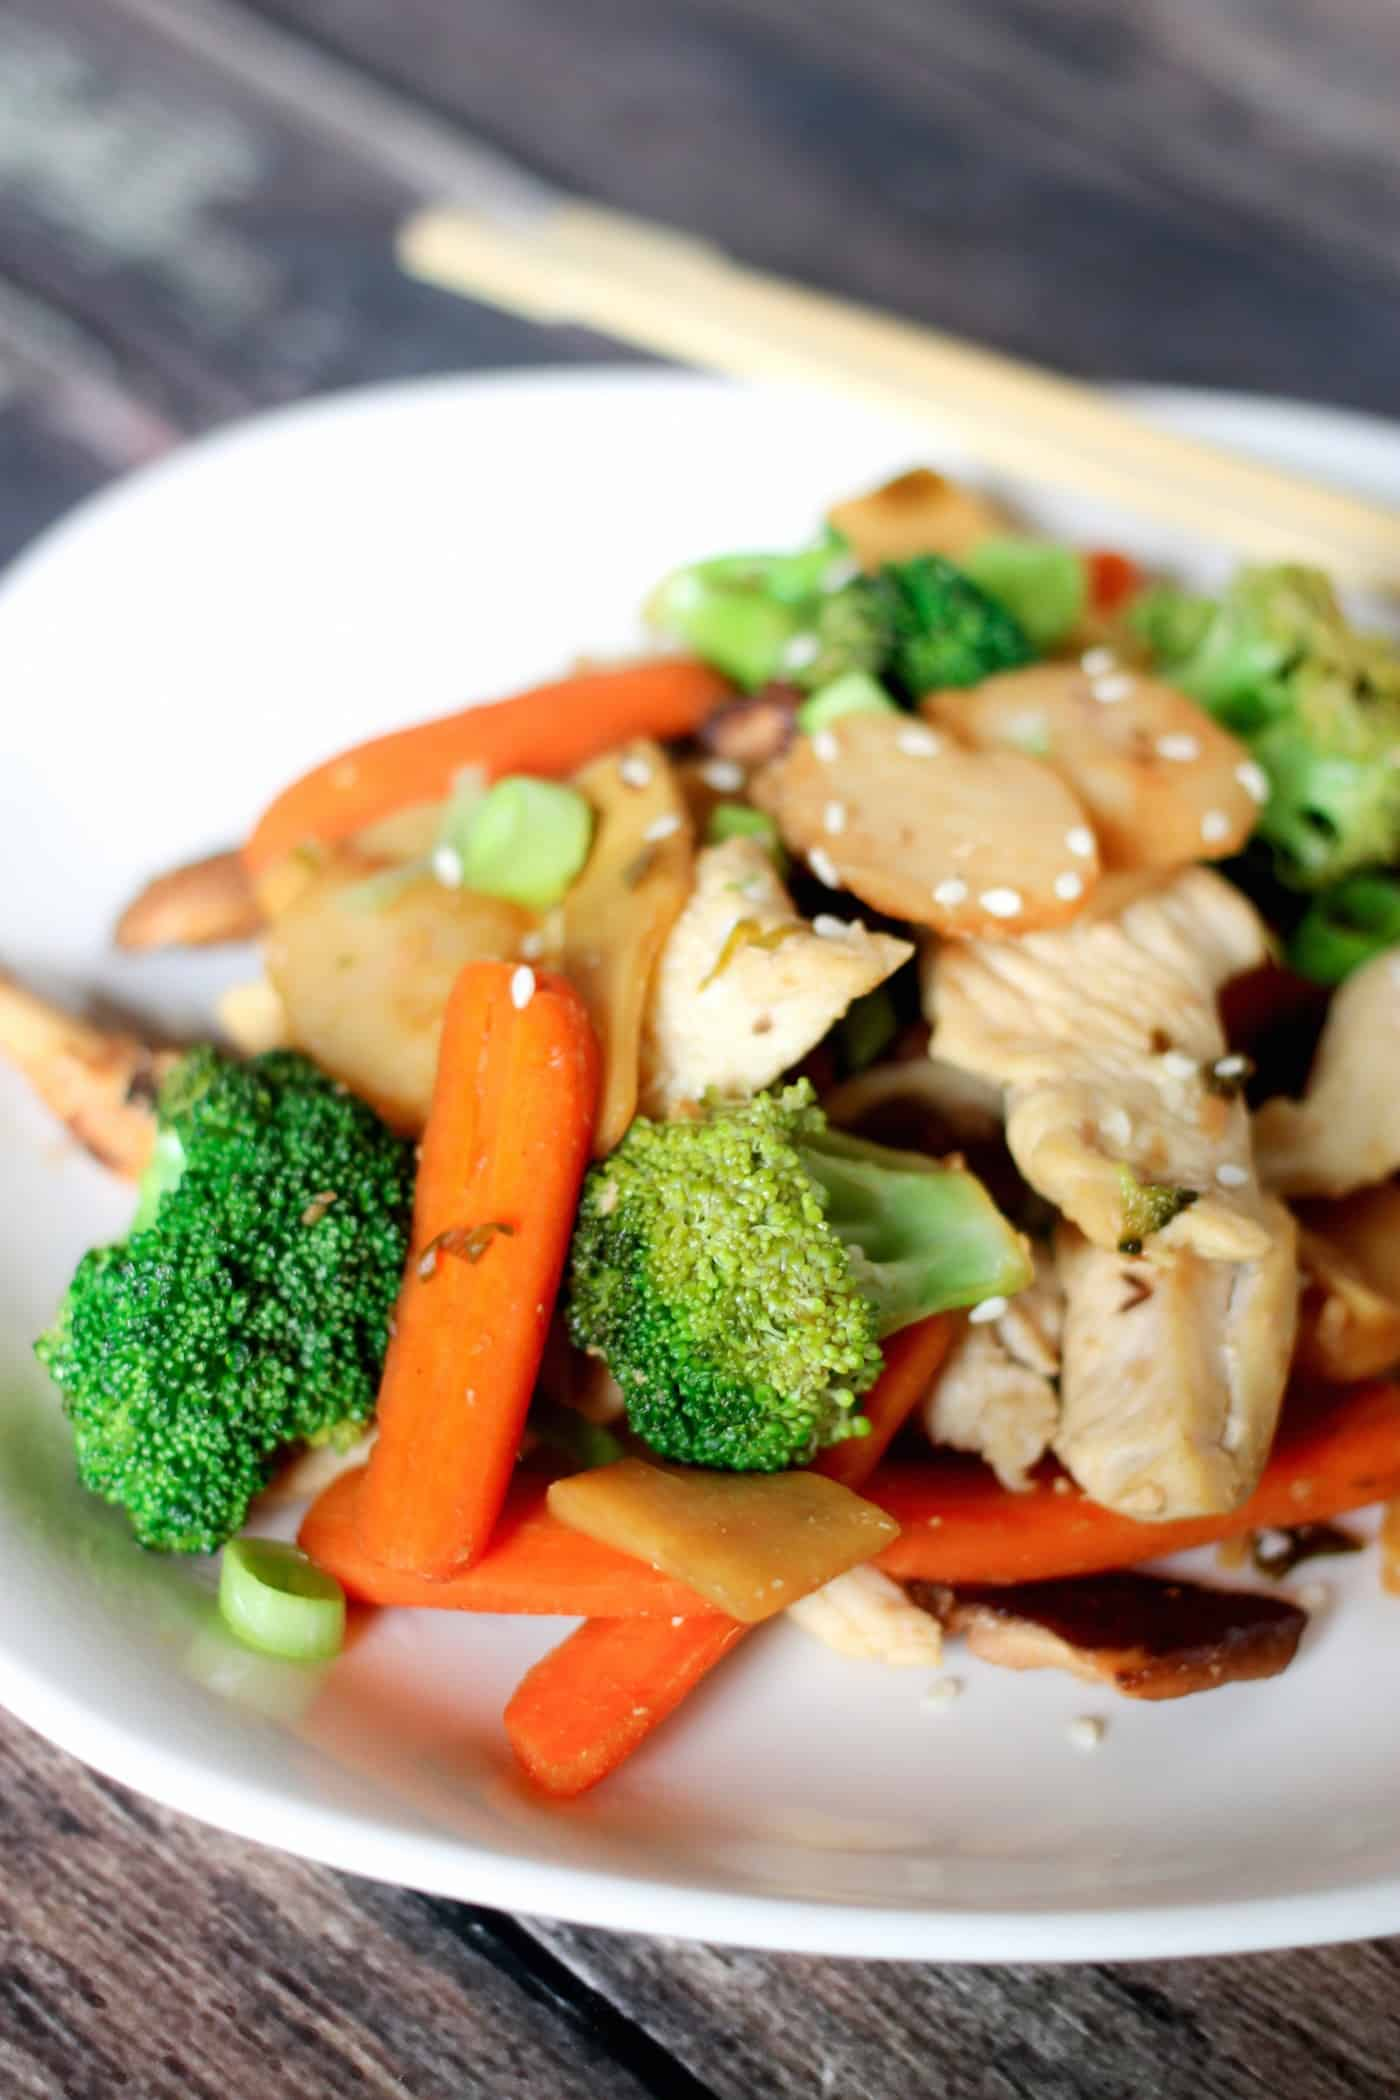 Healthy stir fry recipe with chicken and vegetables